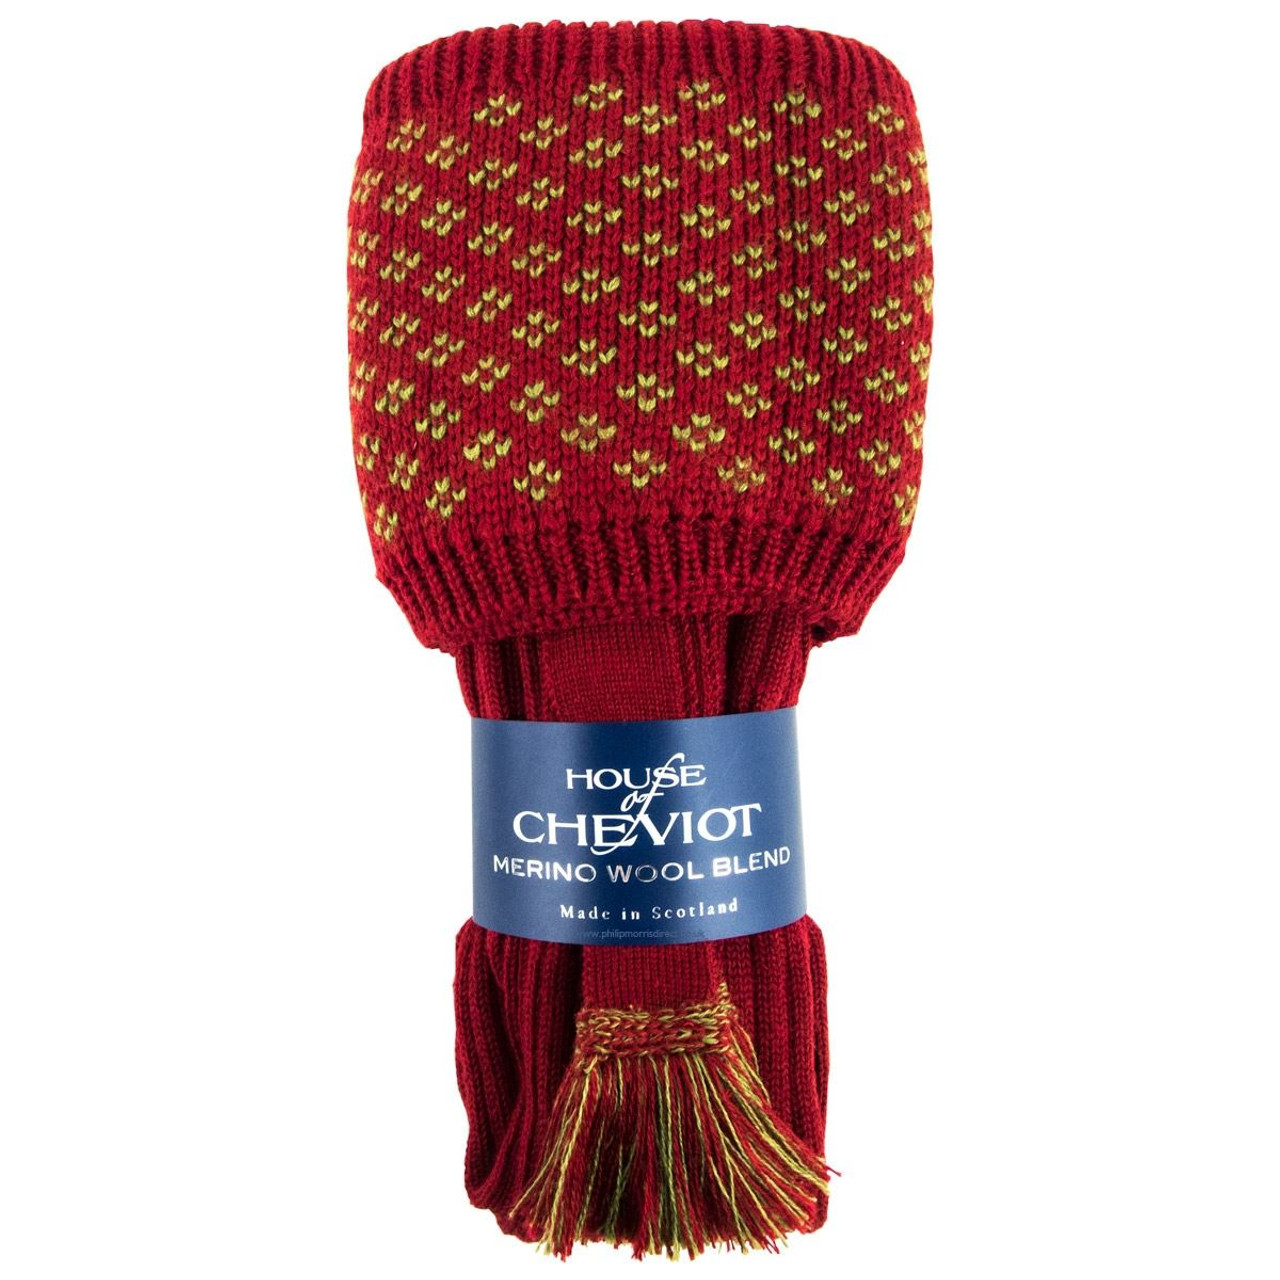 House of Cheviot Boughton Pattern Top Sock Set